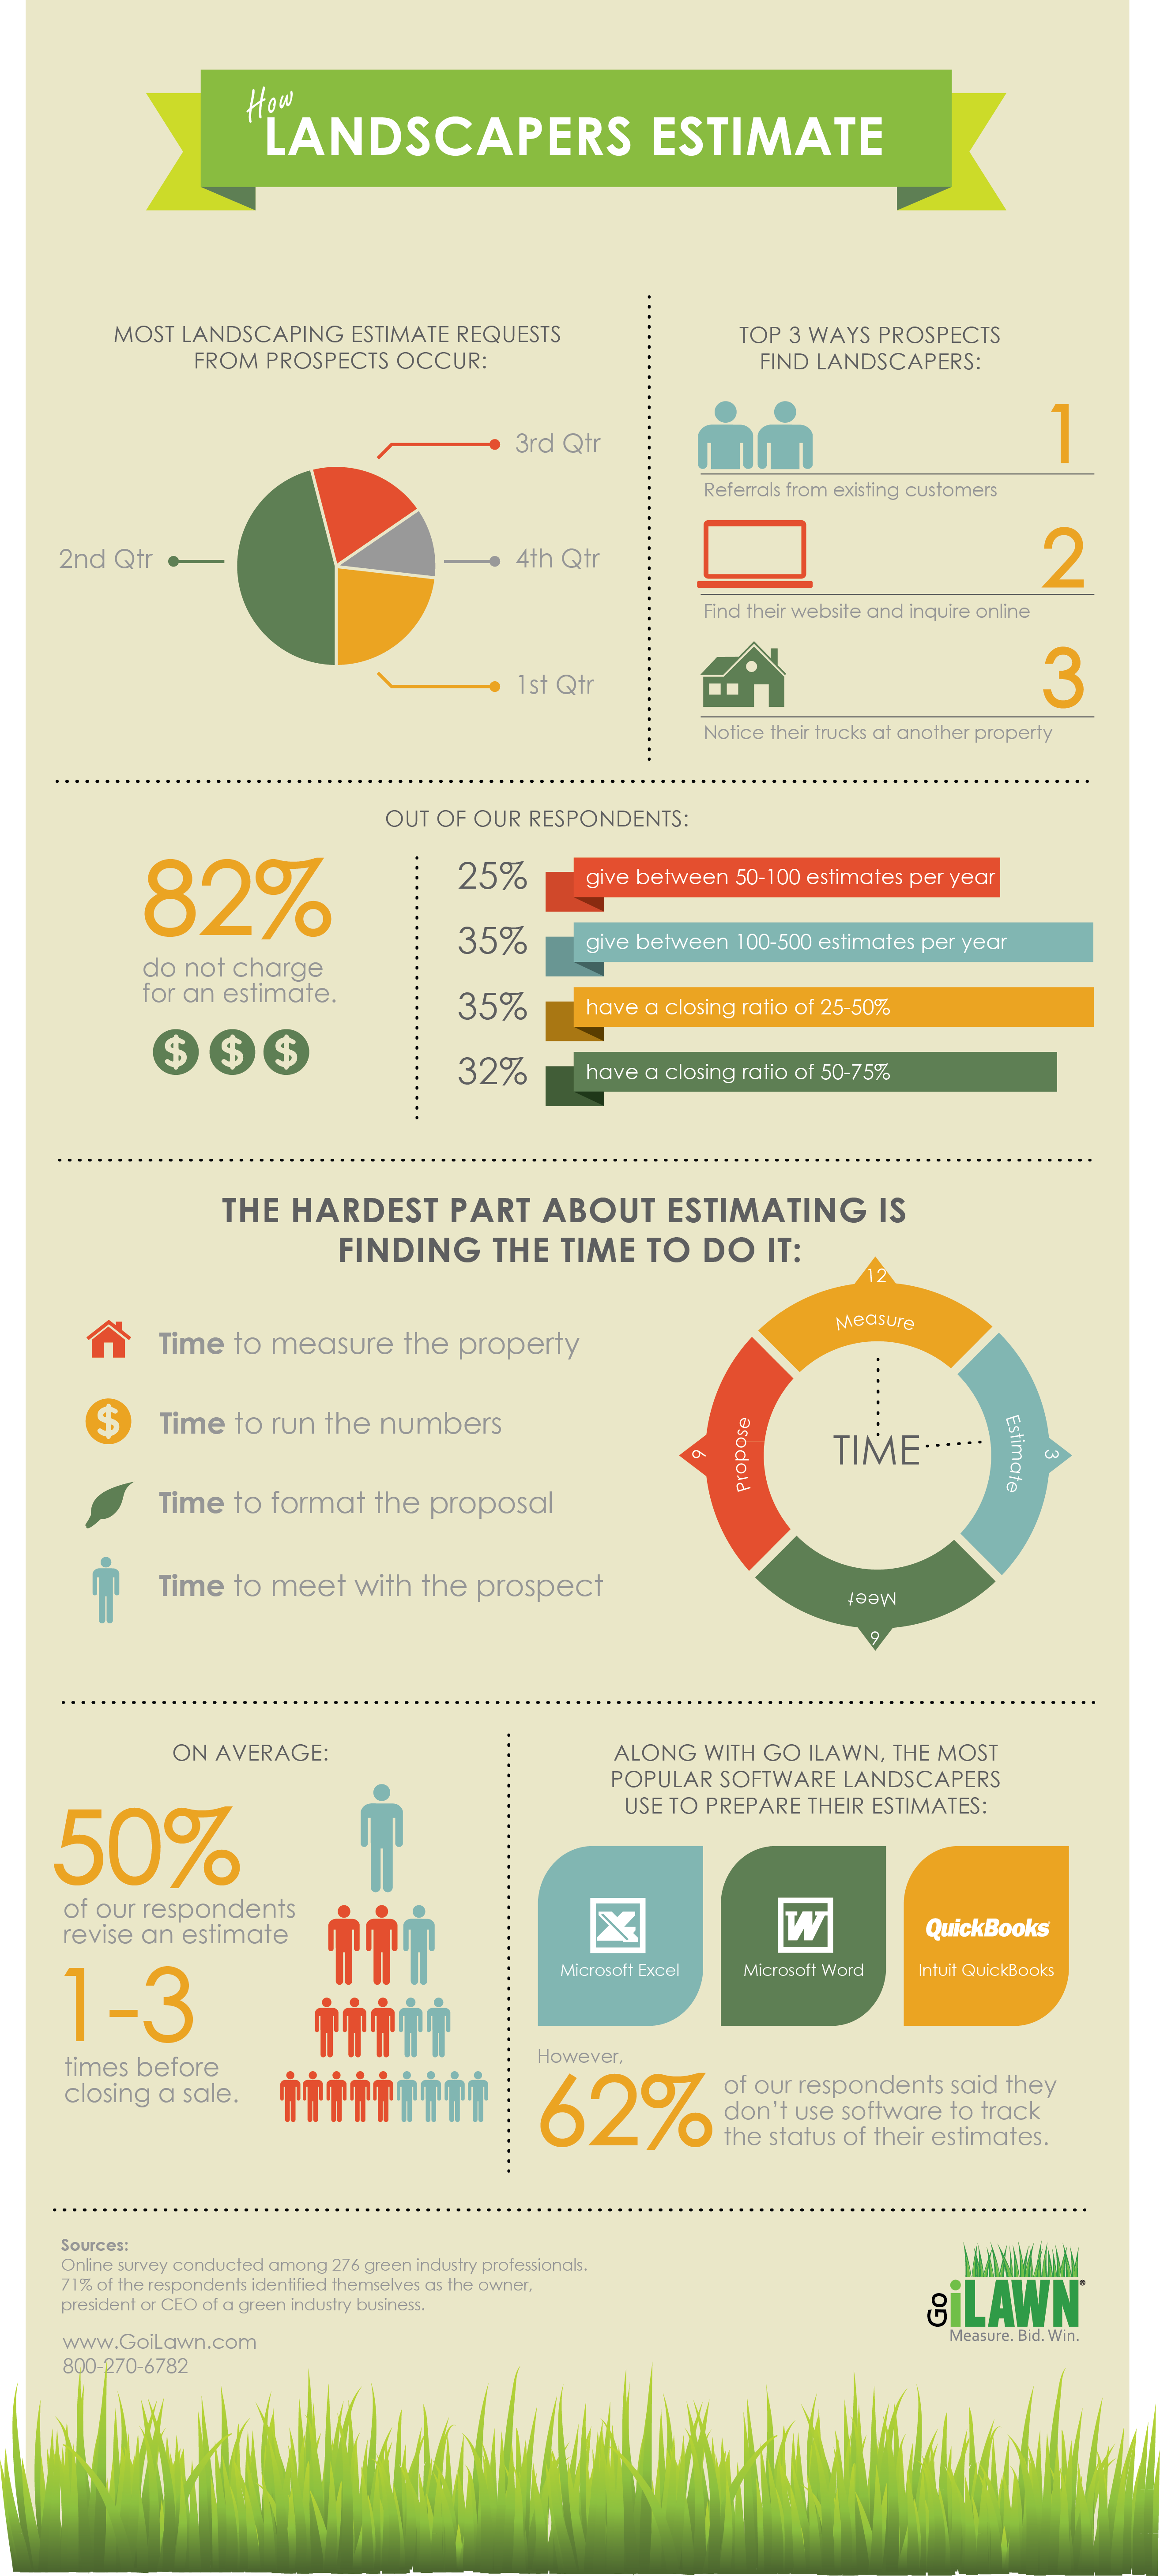 Infographic How Landscapers Estimate By Go iLawn